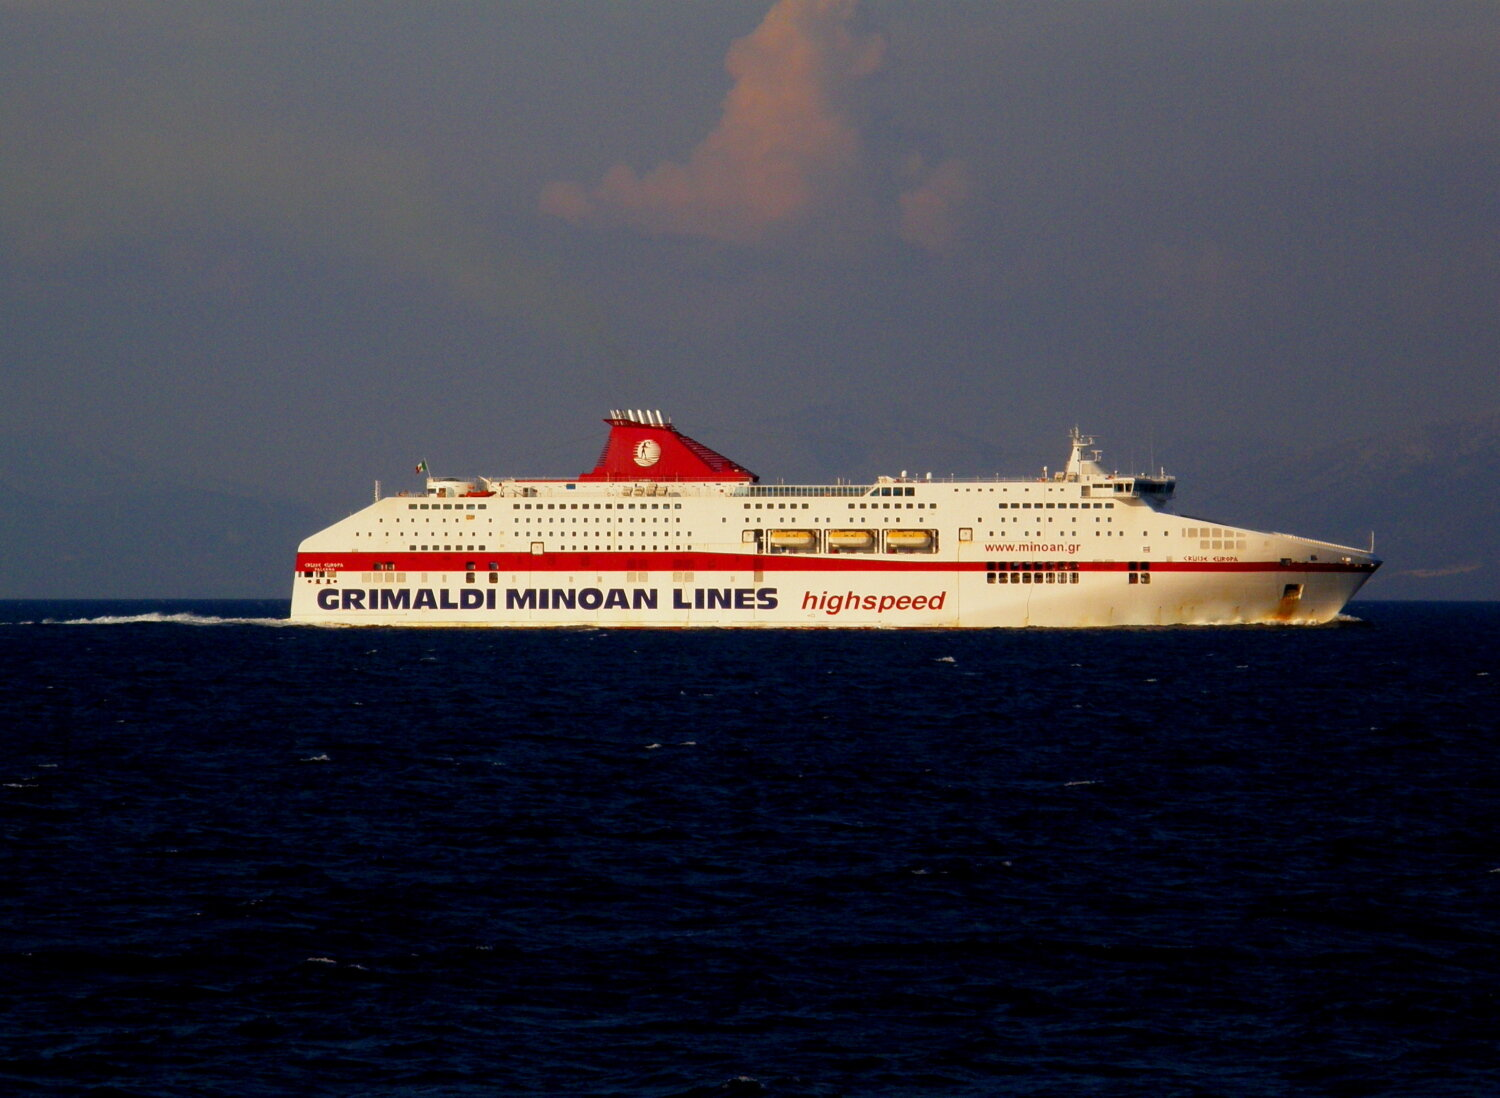 cruise europa off echinades islets 09092019 a